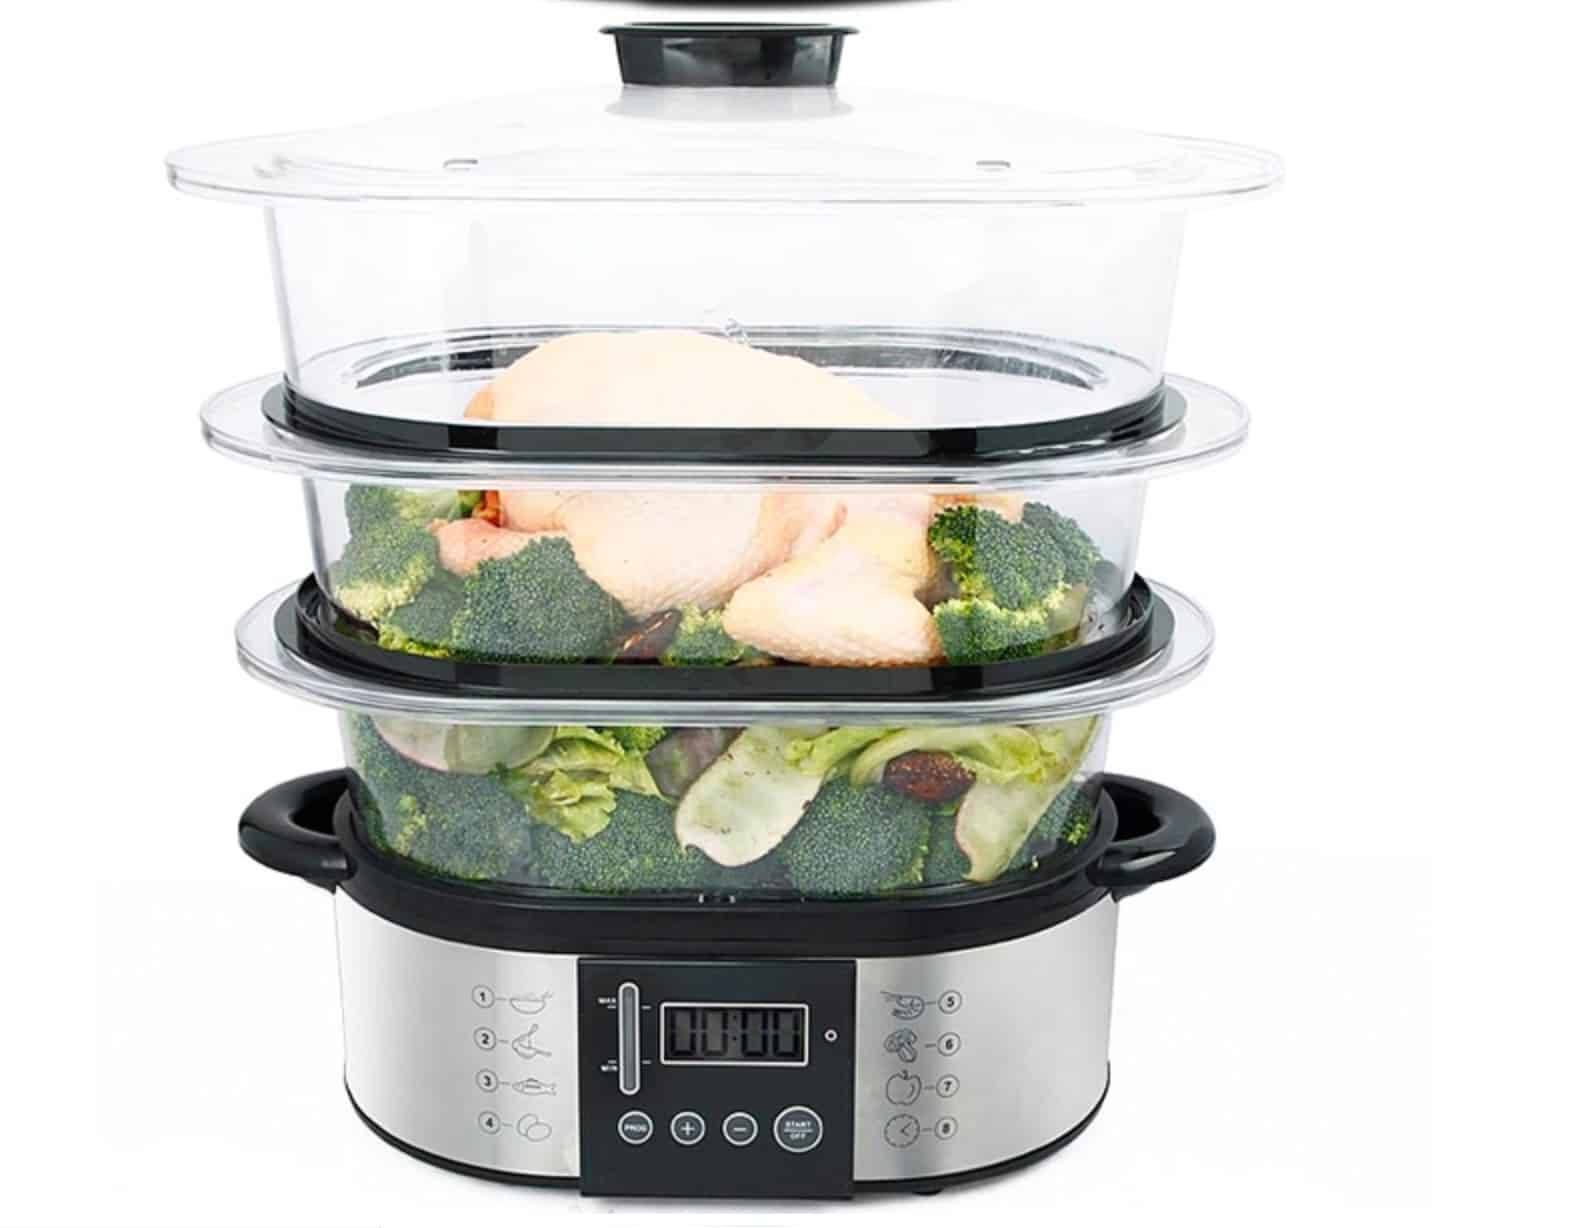 Best Food Steamer in Singapore